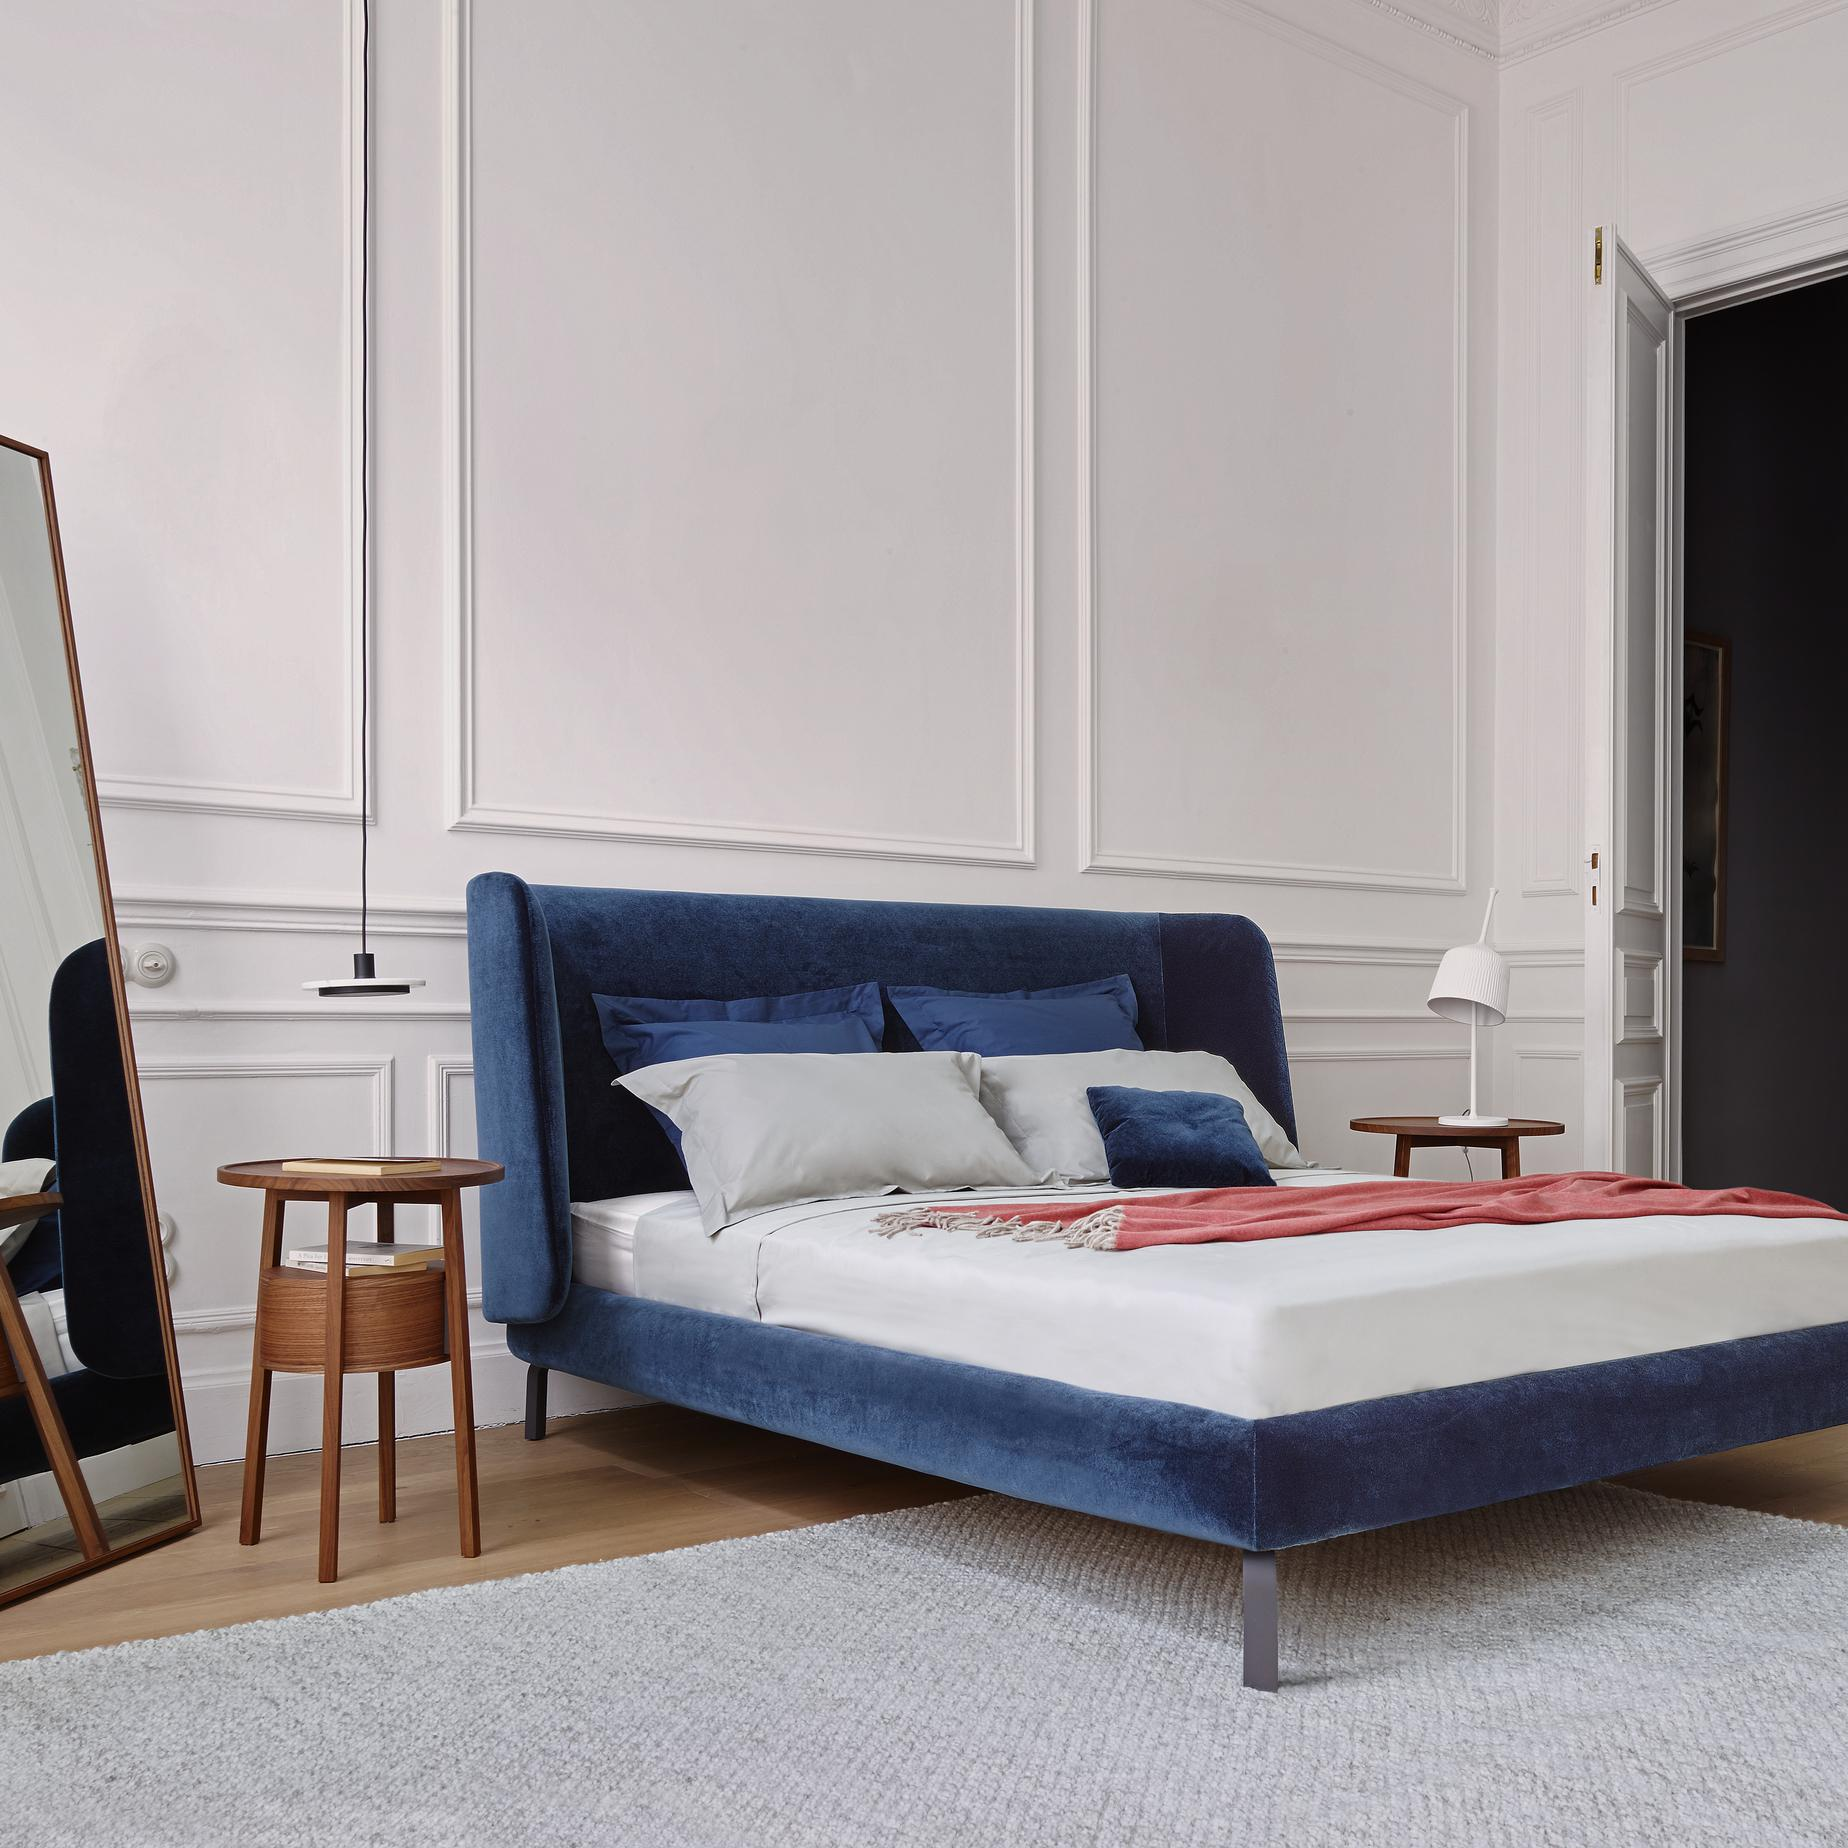 desdemone beds from designer n nasrallah c horner ligne roset official site. Black Bedroom Furniture Sets. Home Design Ideas